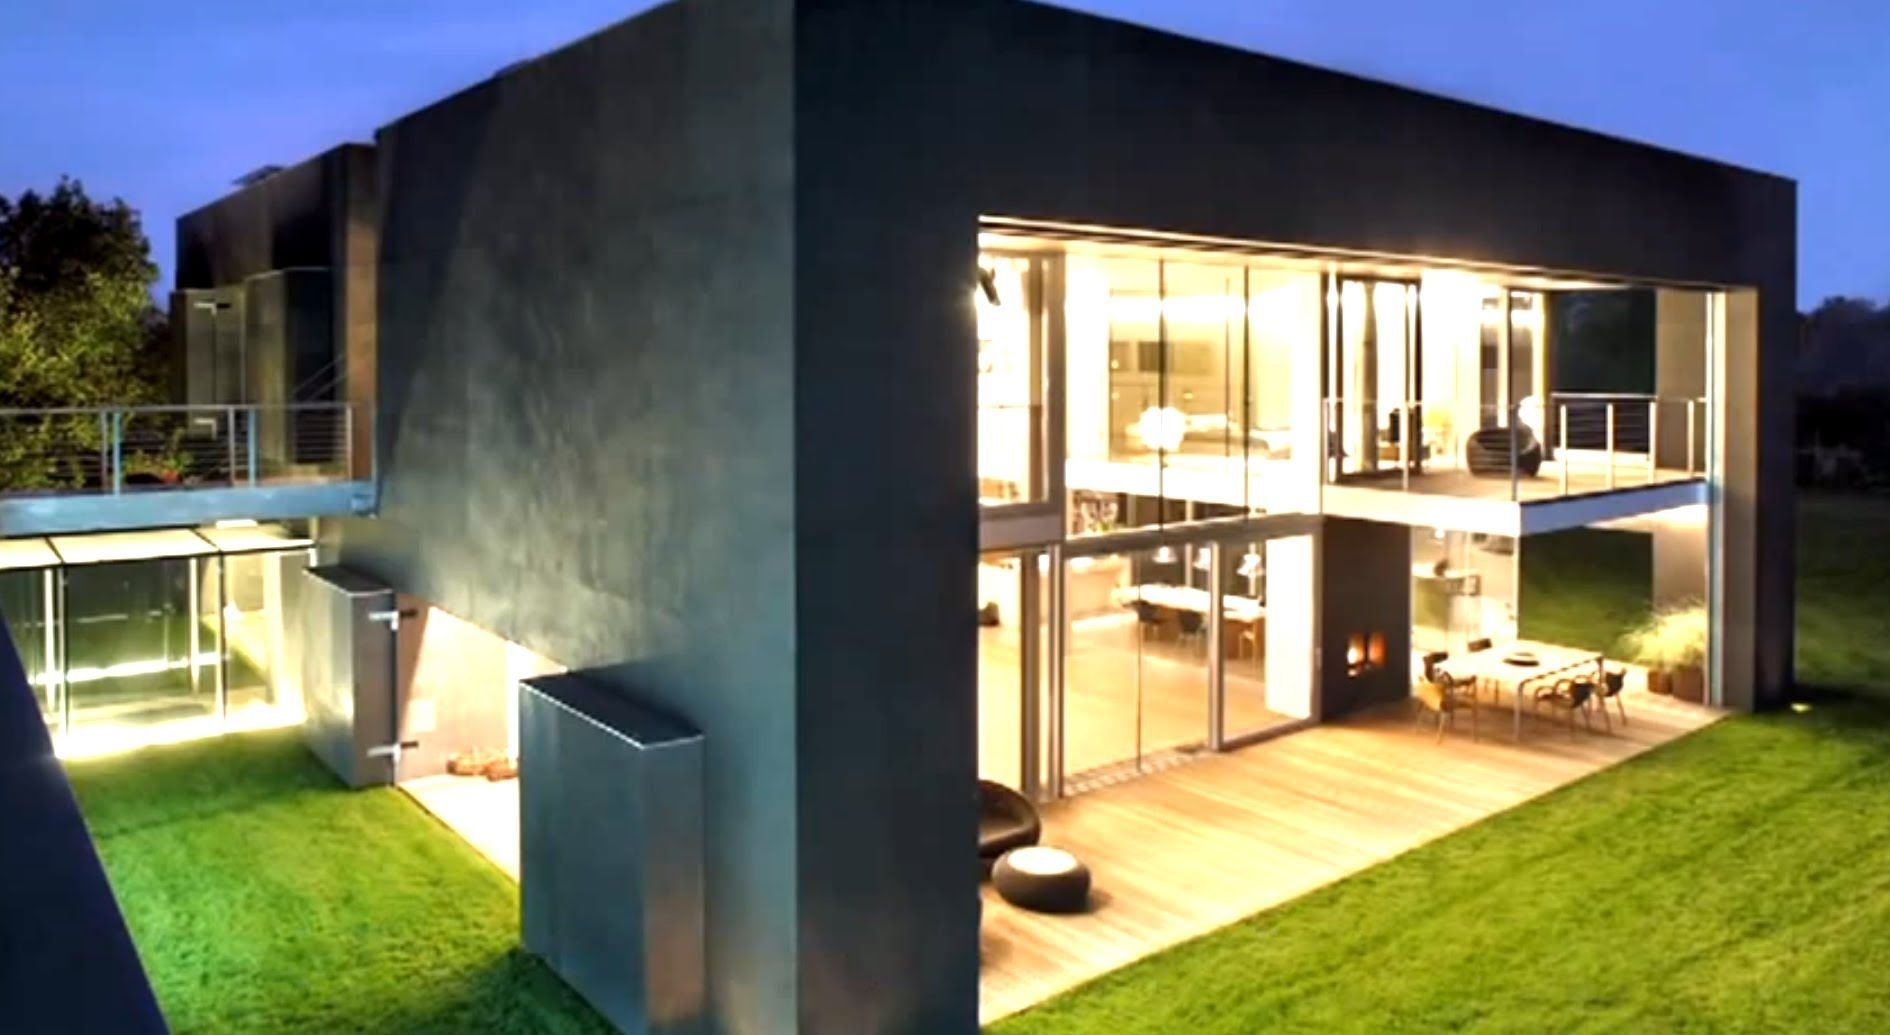 Home Fortress - Safest Home in World! - YouTube   Architektur ...